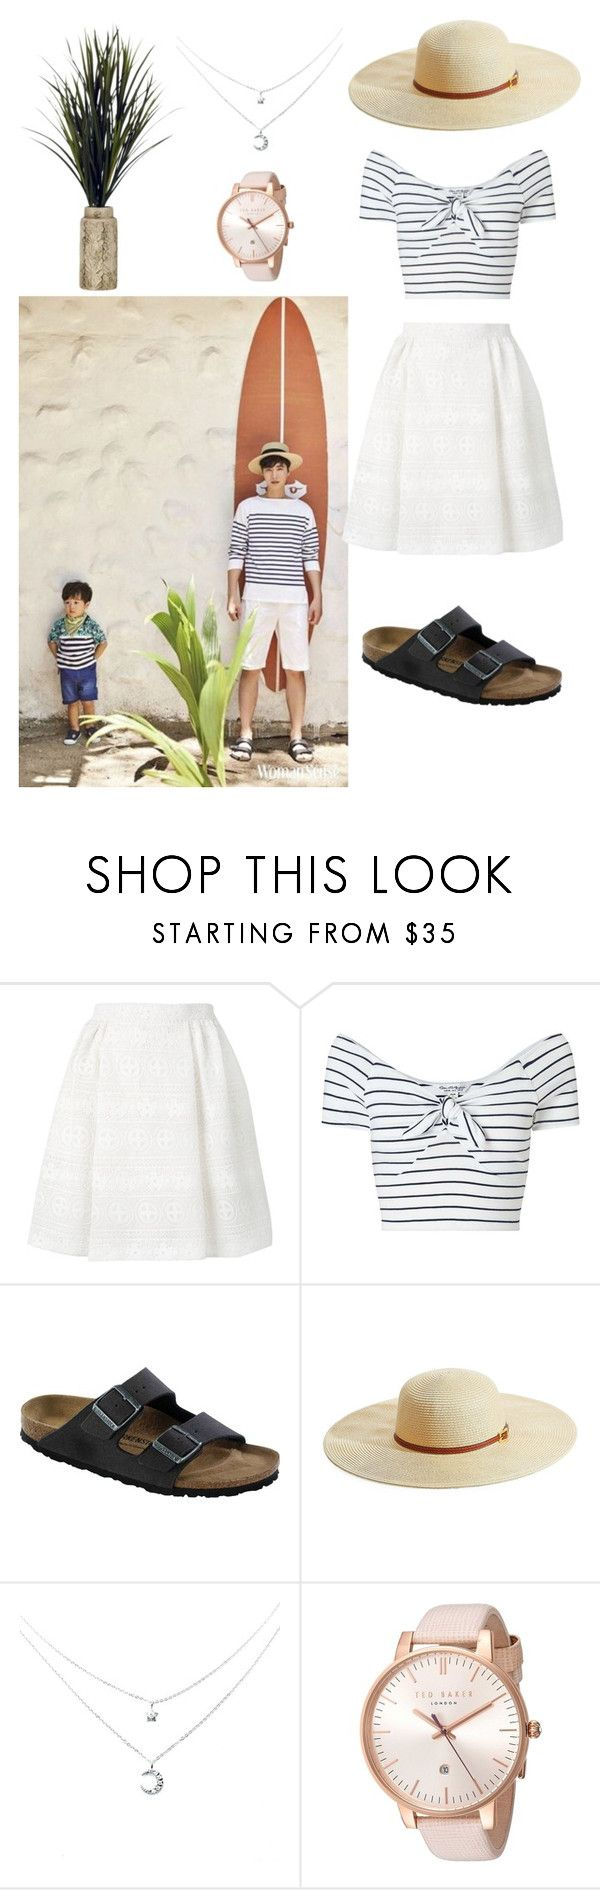 """""""JiYong on Woman Sense Magazine"""" by catezovi ❤ liked on Polyvore featuring RED Valentino, Miss Selfridge, Birkenstock, Melissa Odabash and Ted Baker"""